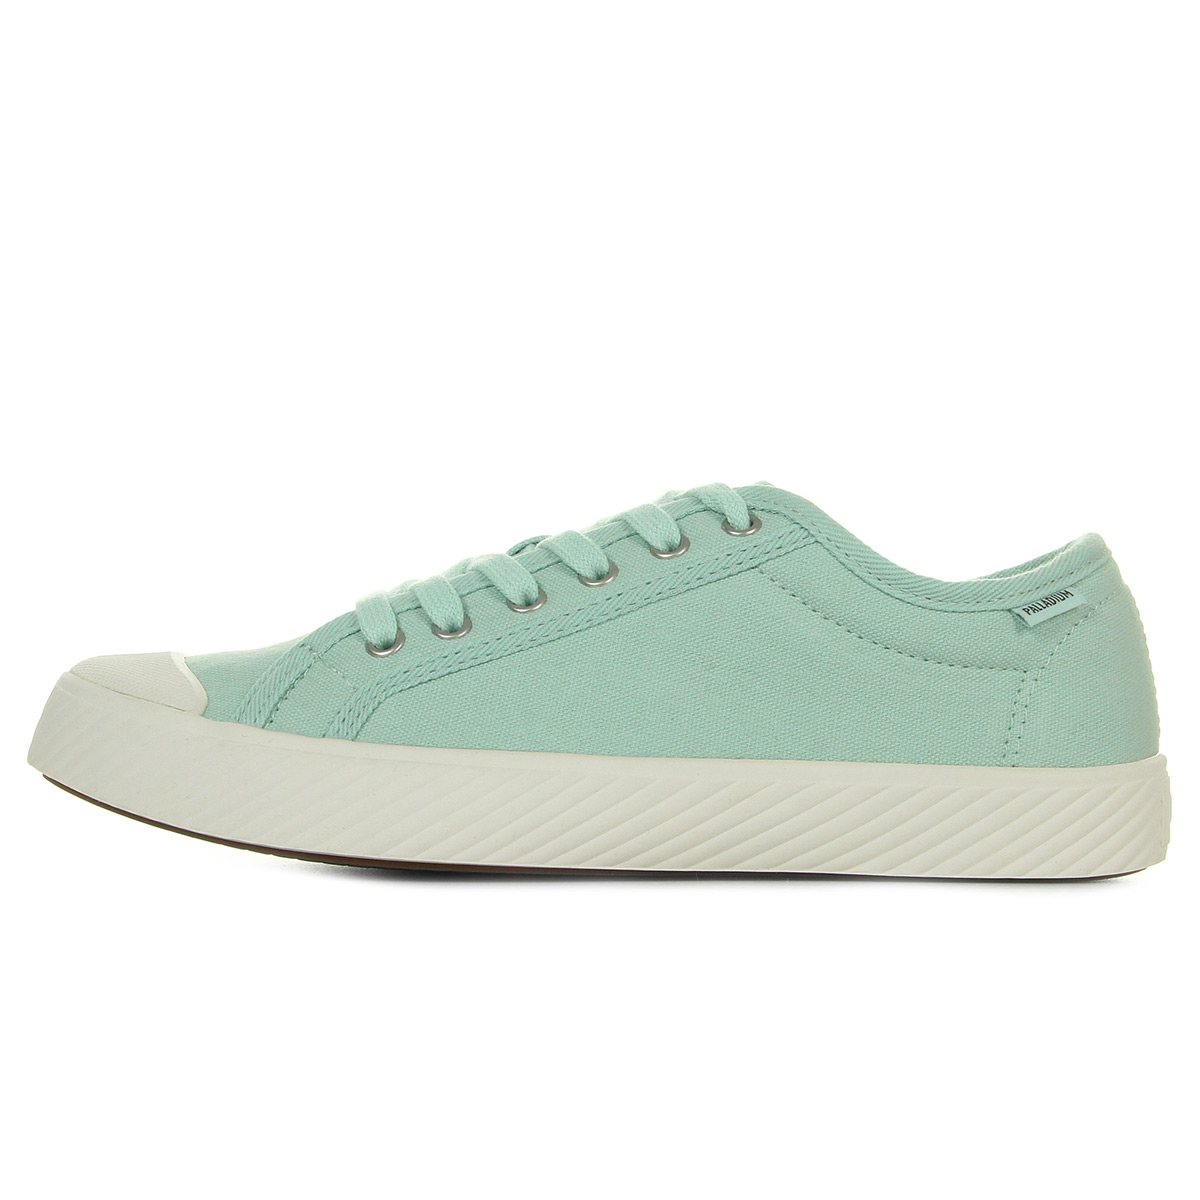 Baskets Palladium Pallaphoenix OG Canvas Misty Jade iTUeFwjI4